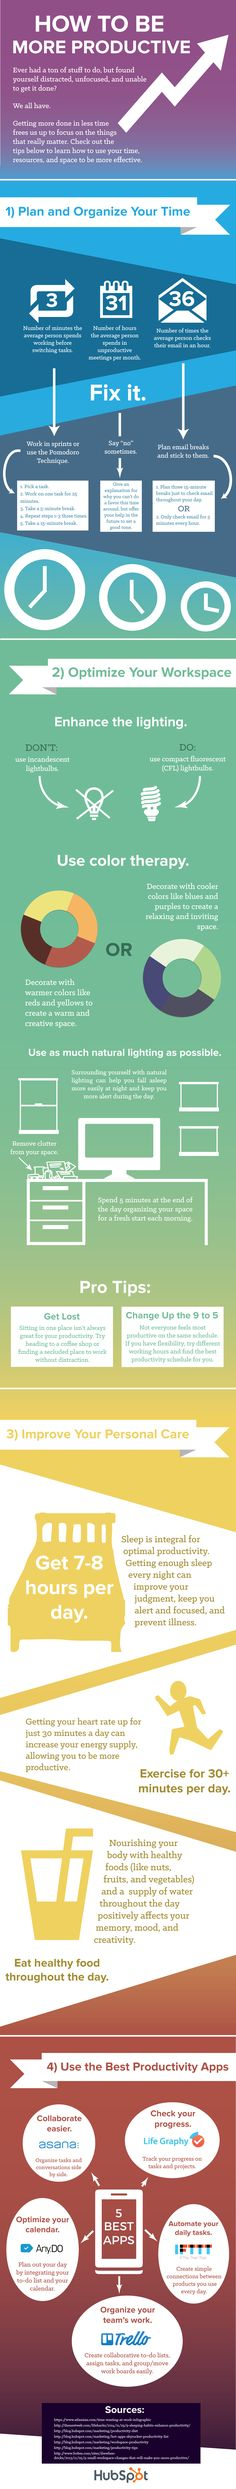 Discover how you can be more productive and accomplish more in less time with these 13 productivity tips for entrepreneurs.Brought to you by hubspot. Source: 13 Tips for Entrepreneurs to Be More Productive Productivity Apps, Increase Productivity, Time Management Tips, Project Management, Professional Development, Career Development, Business Tips, Amway Business, Business Infographics